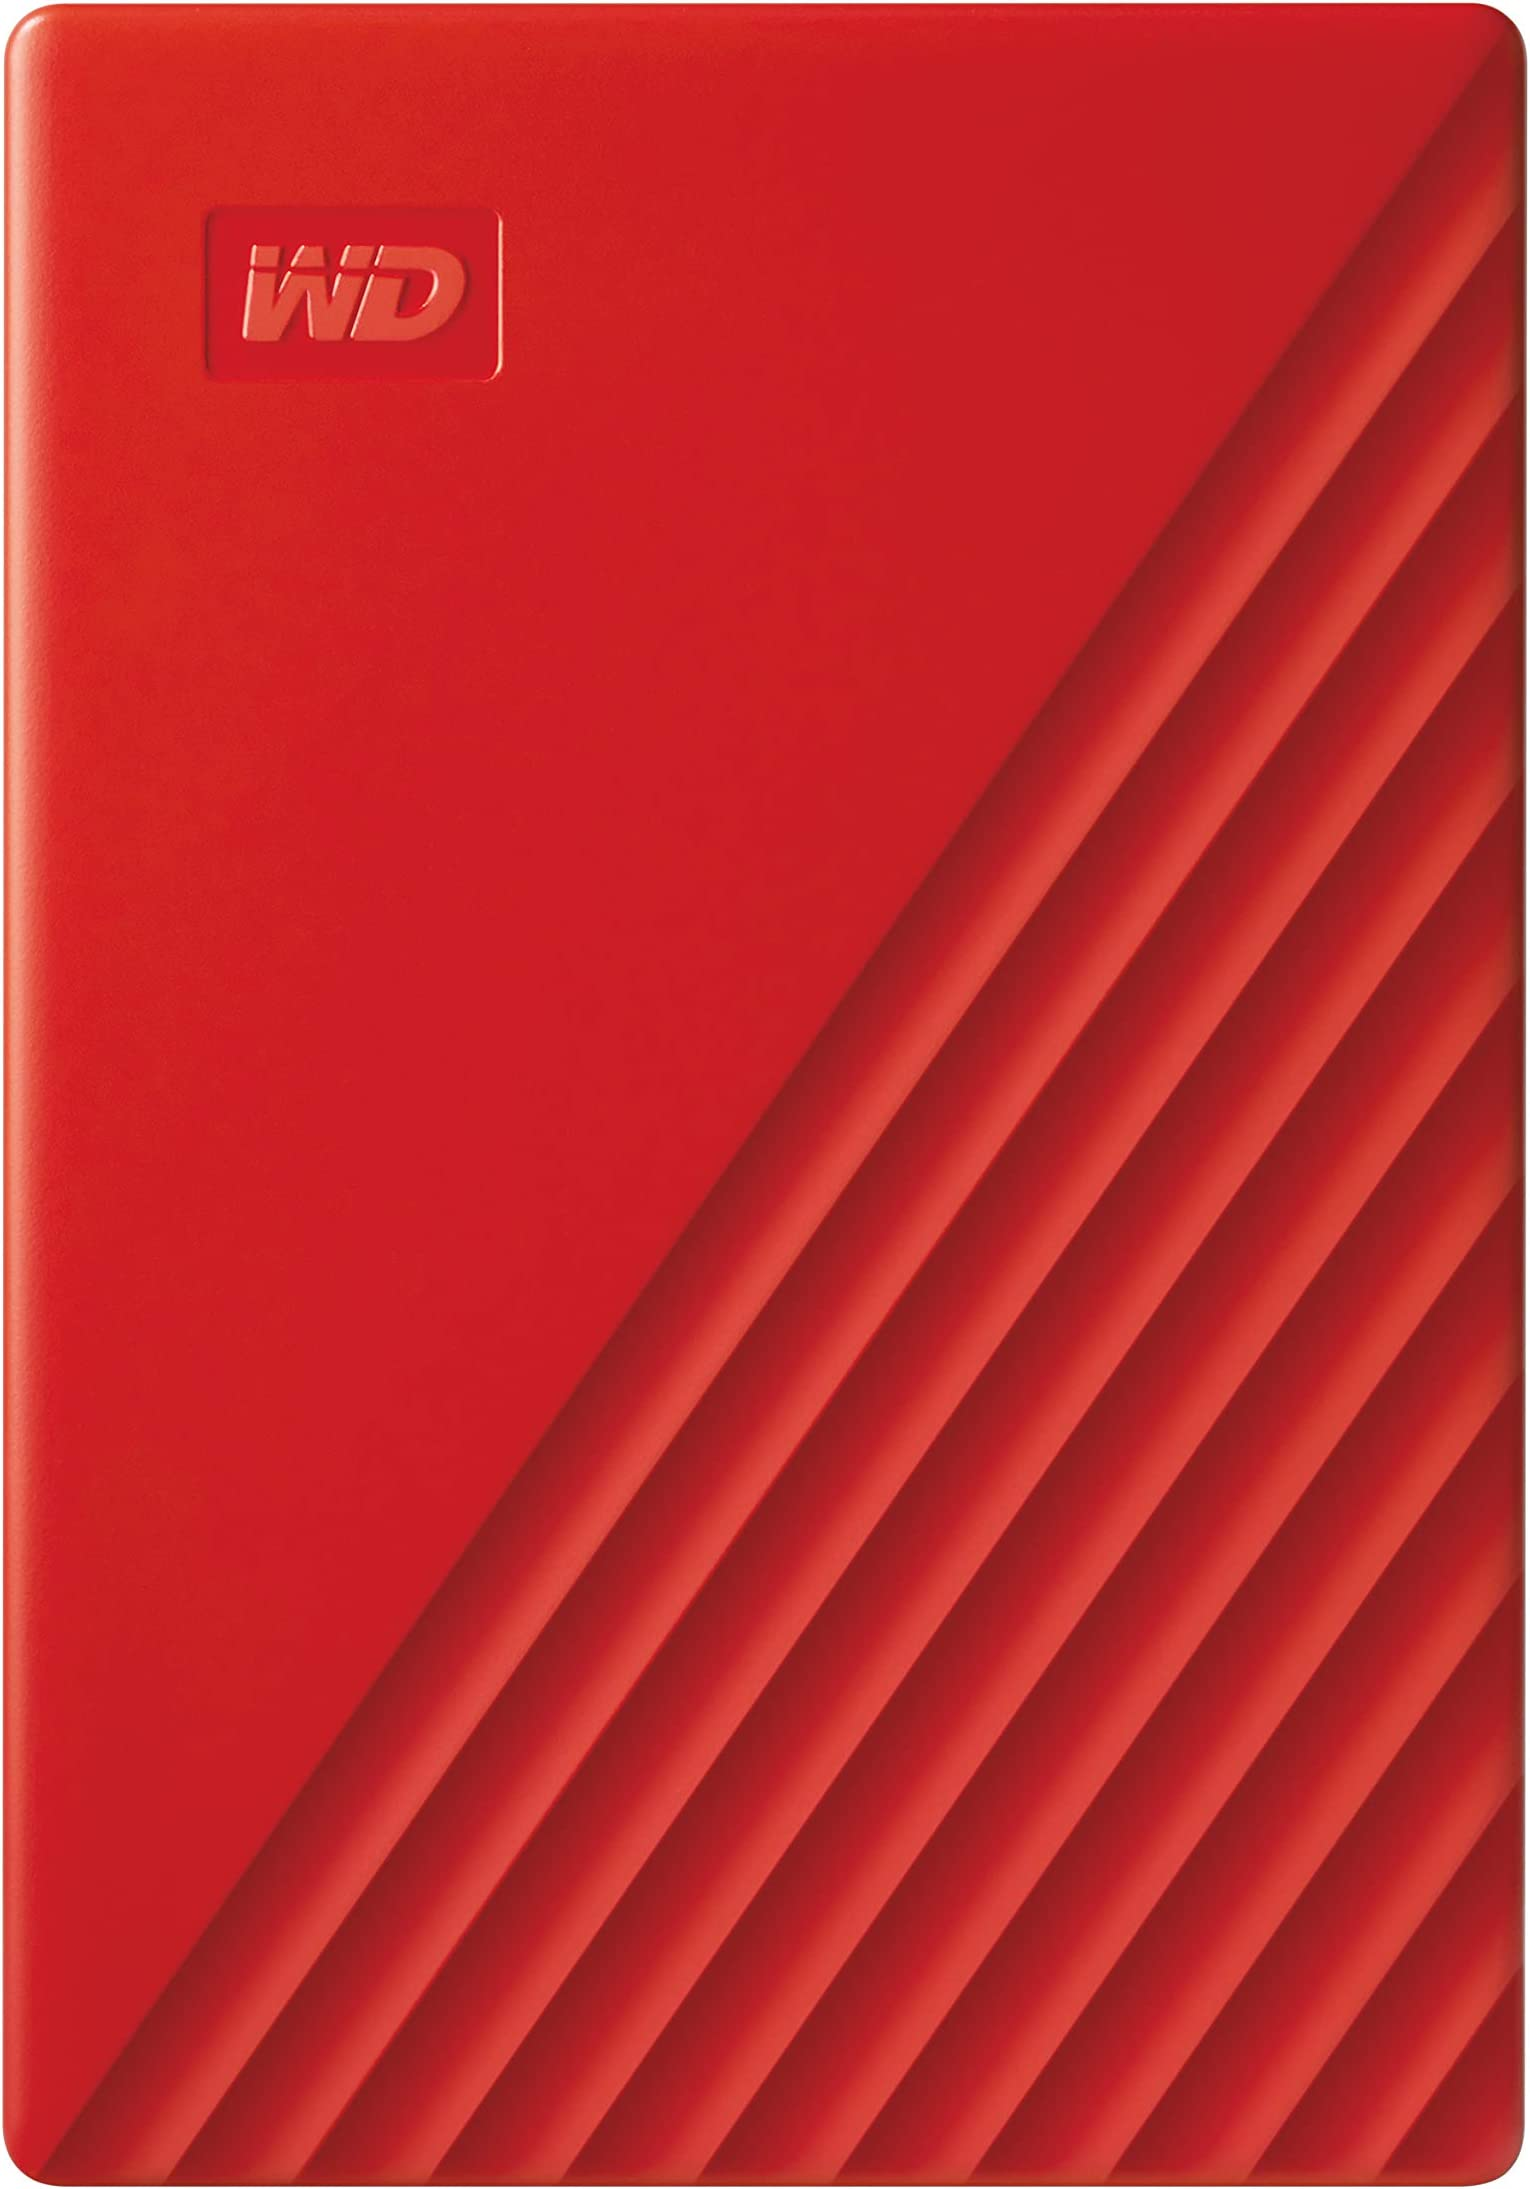 WD 4TB My Passport Portable External Hard Drive HDD, USB 2.0 Compatible, Red - WDBPKJ0040BRD-WESN